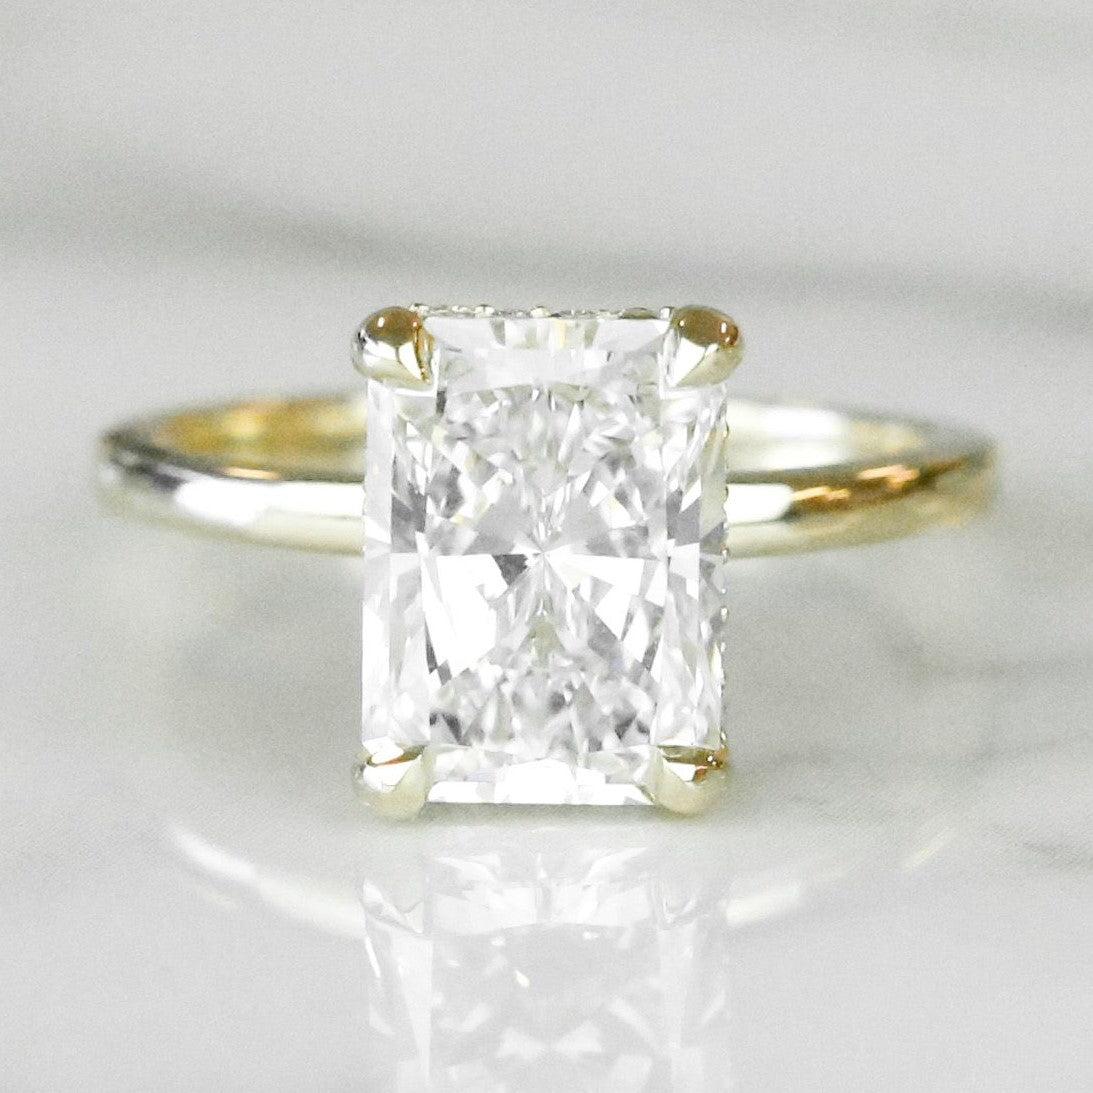 2021 Engagement Ring Trends | Philadelphia Jeweler Breaks Down the Top Engagement Rings Styles For the Year